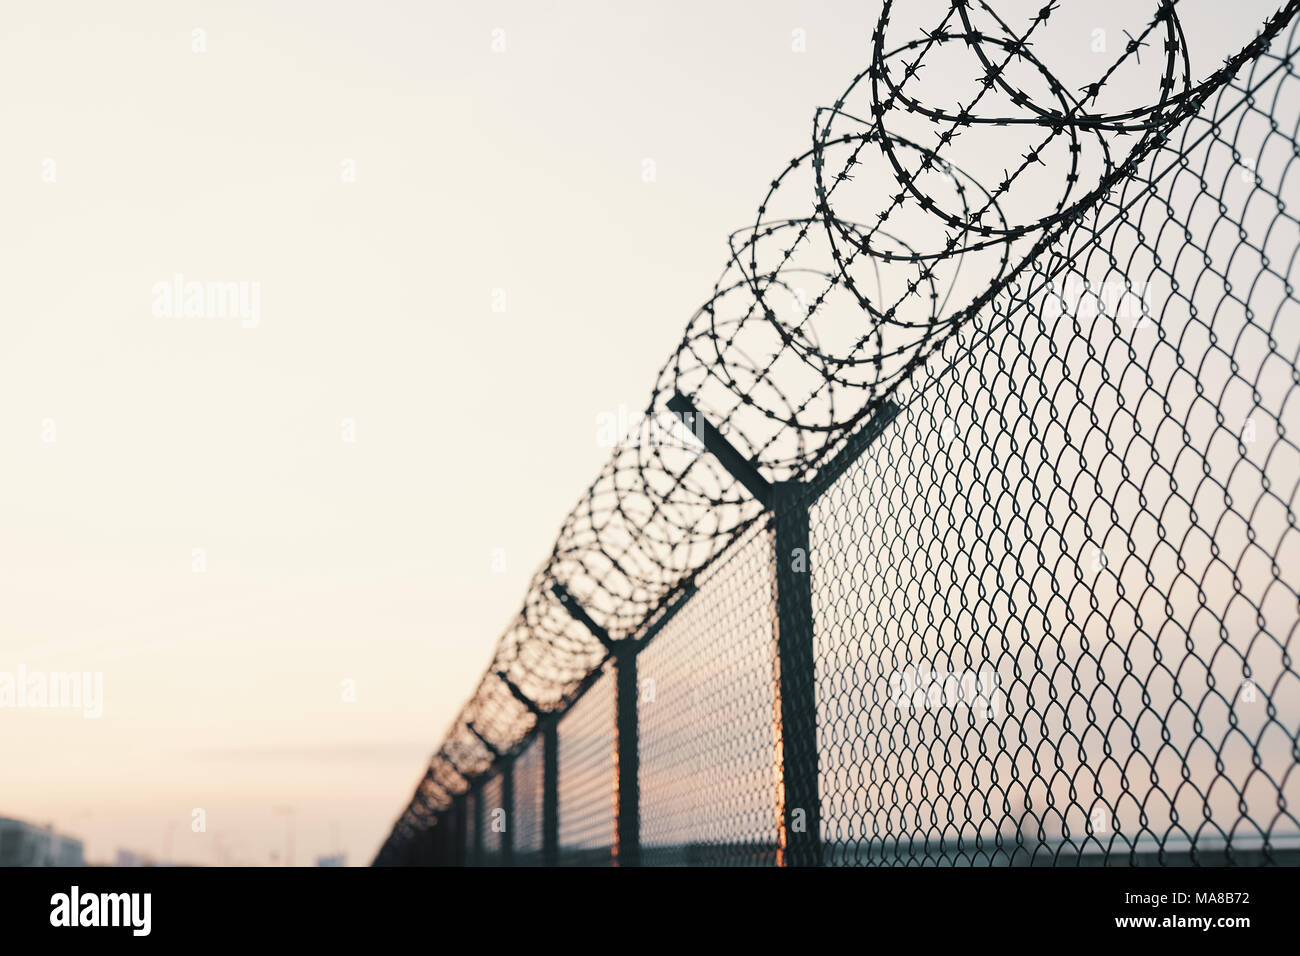 House Barbed Wire Stock Photos & House Barbed Wire Stock Images - Alamy